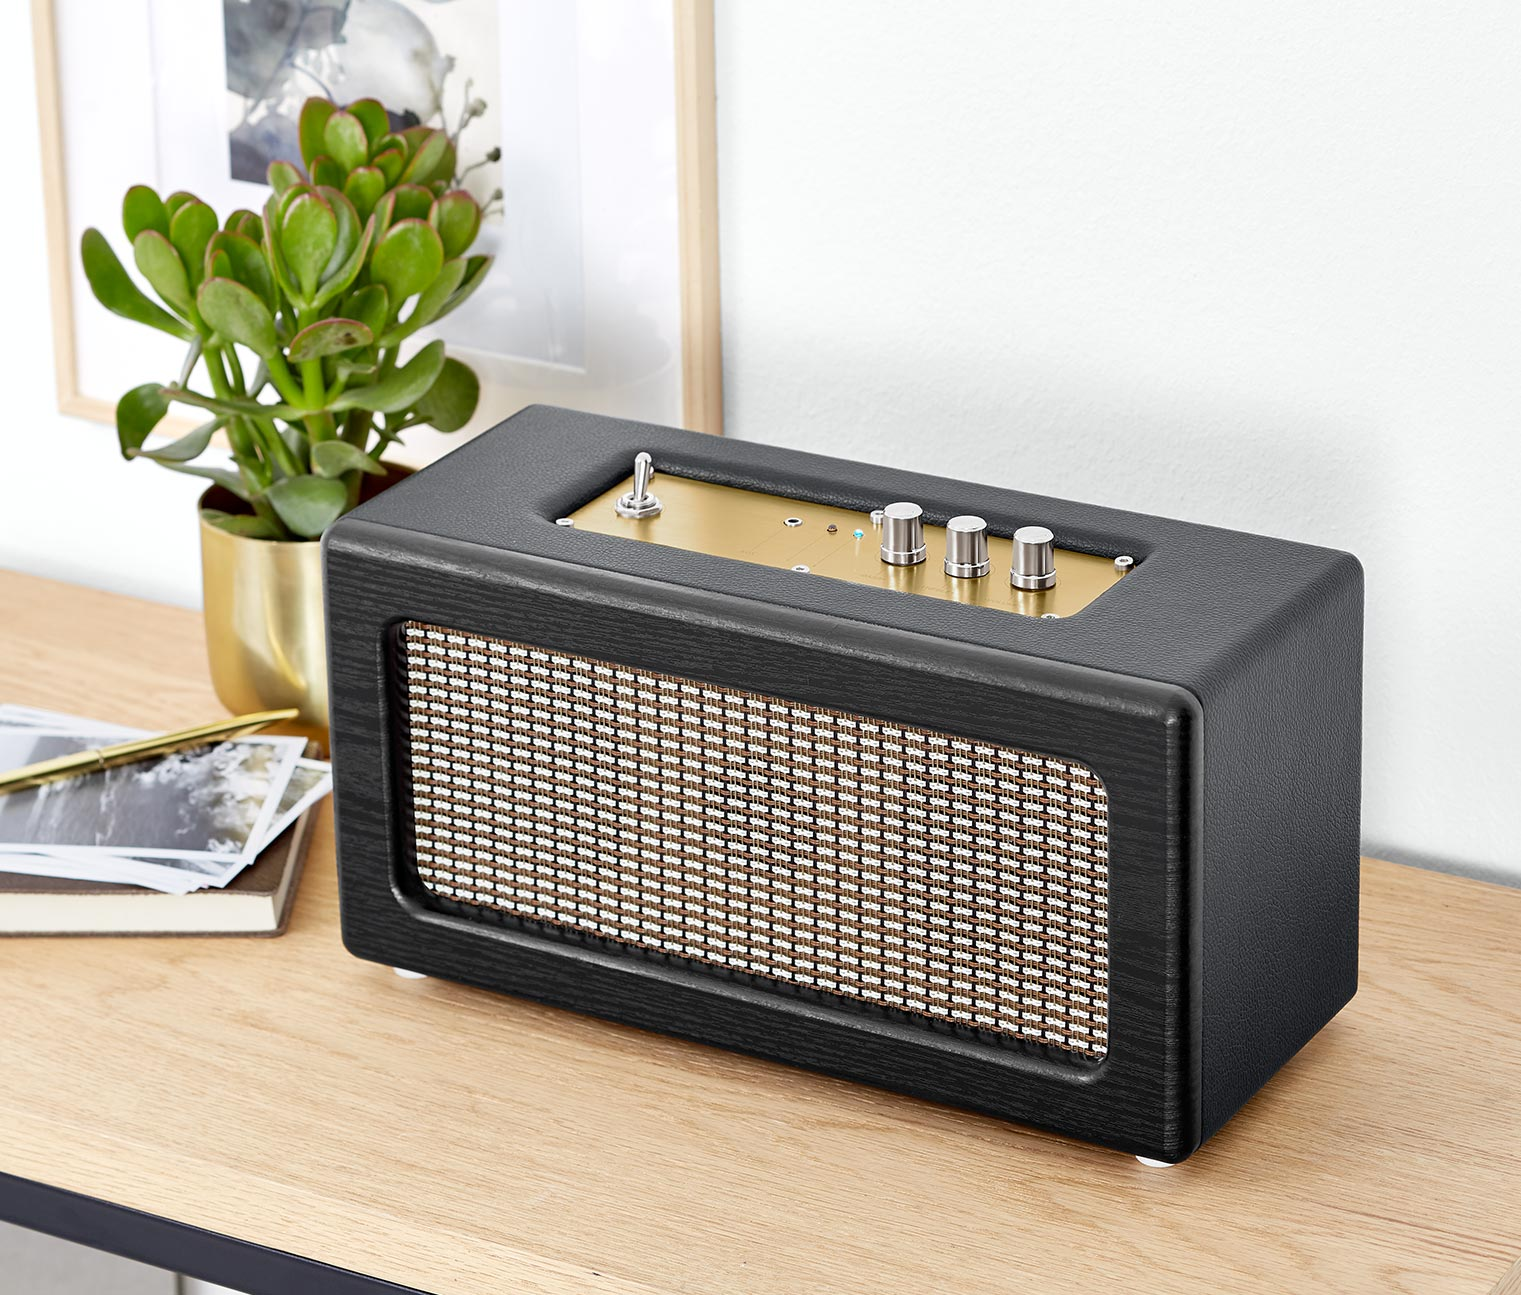 Retro Bluetooth Speaker, Black/Gold